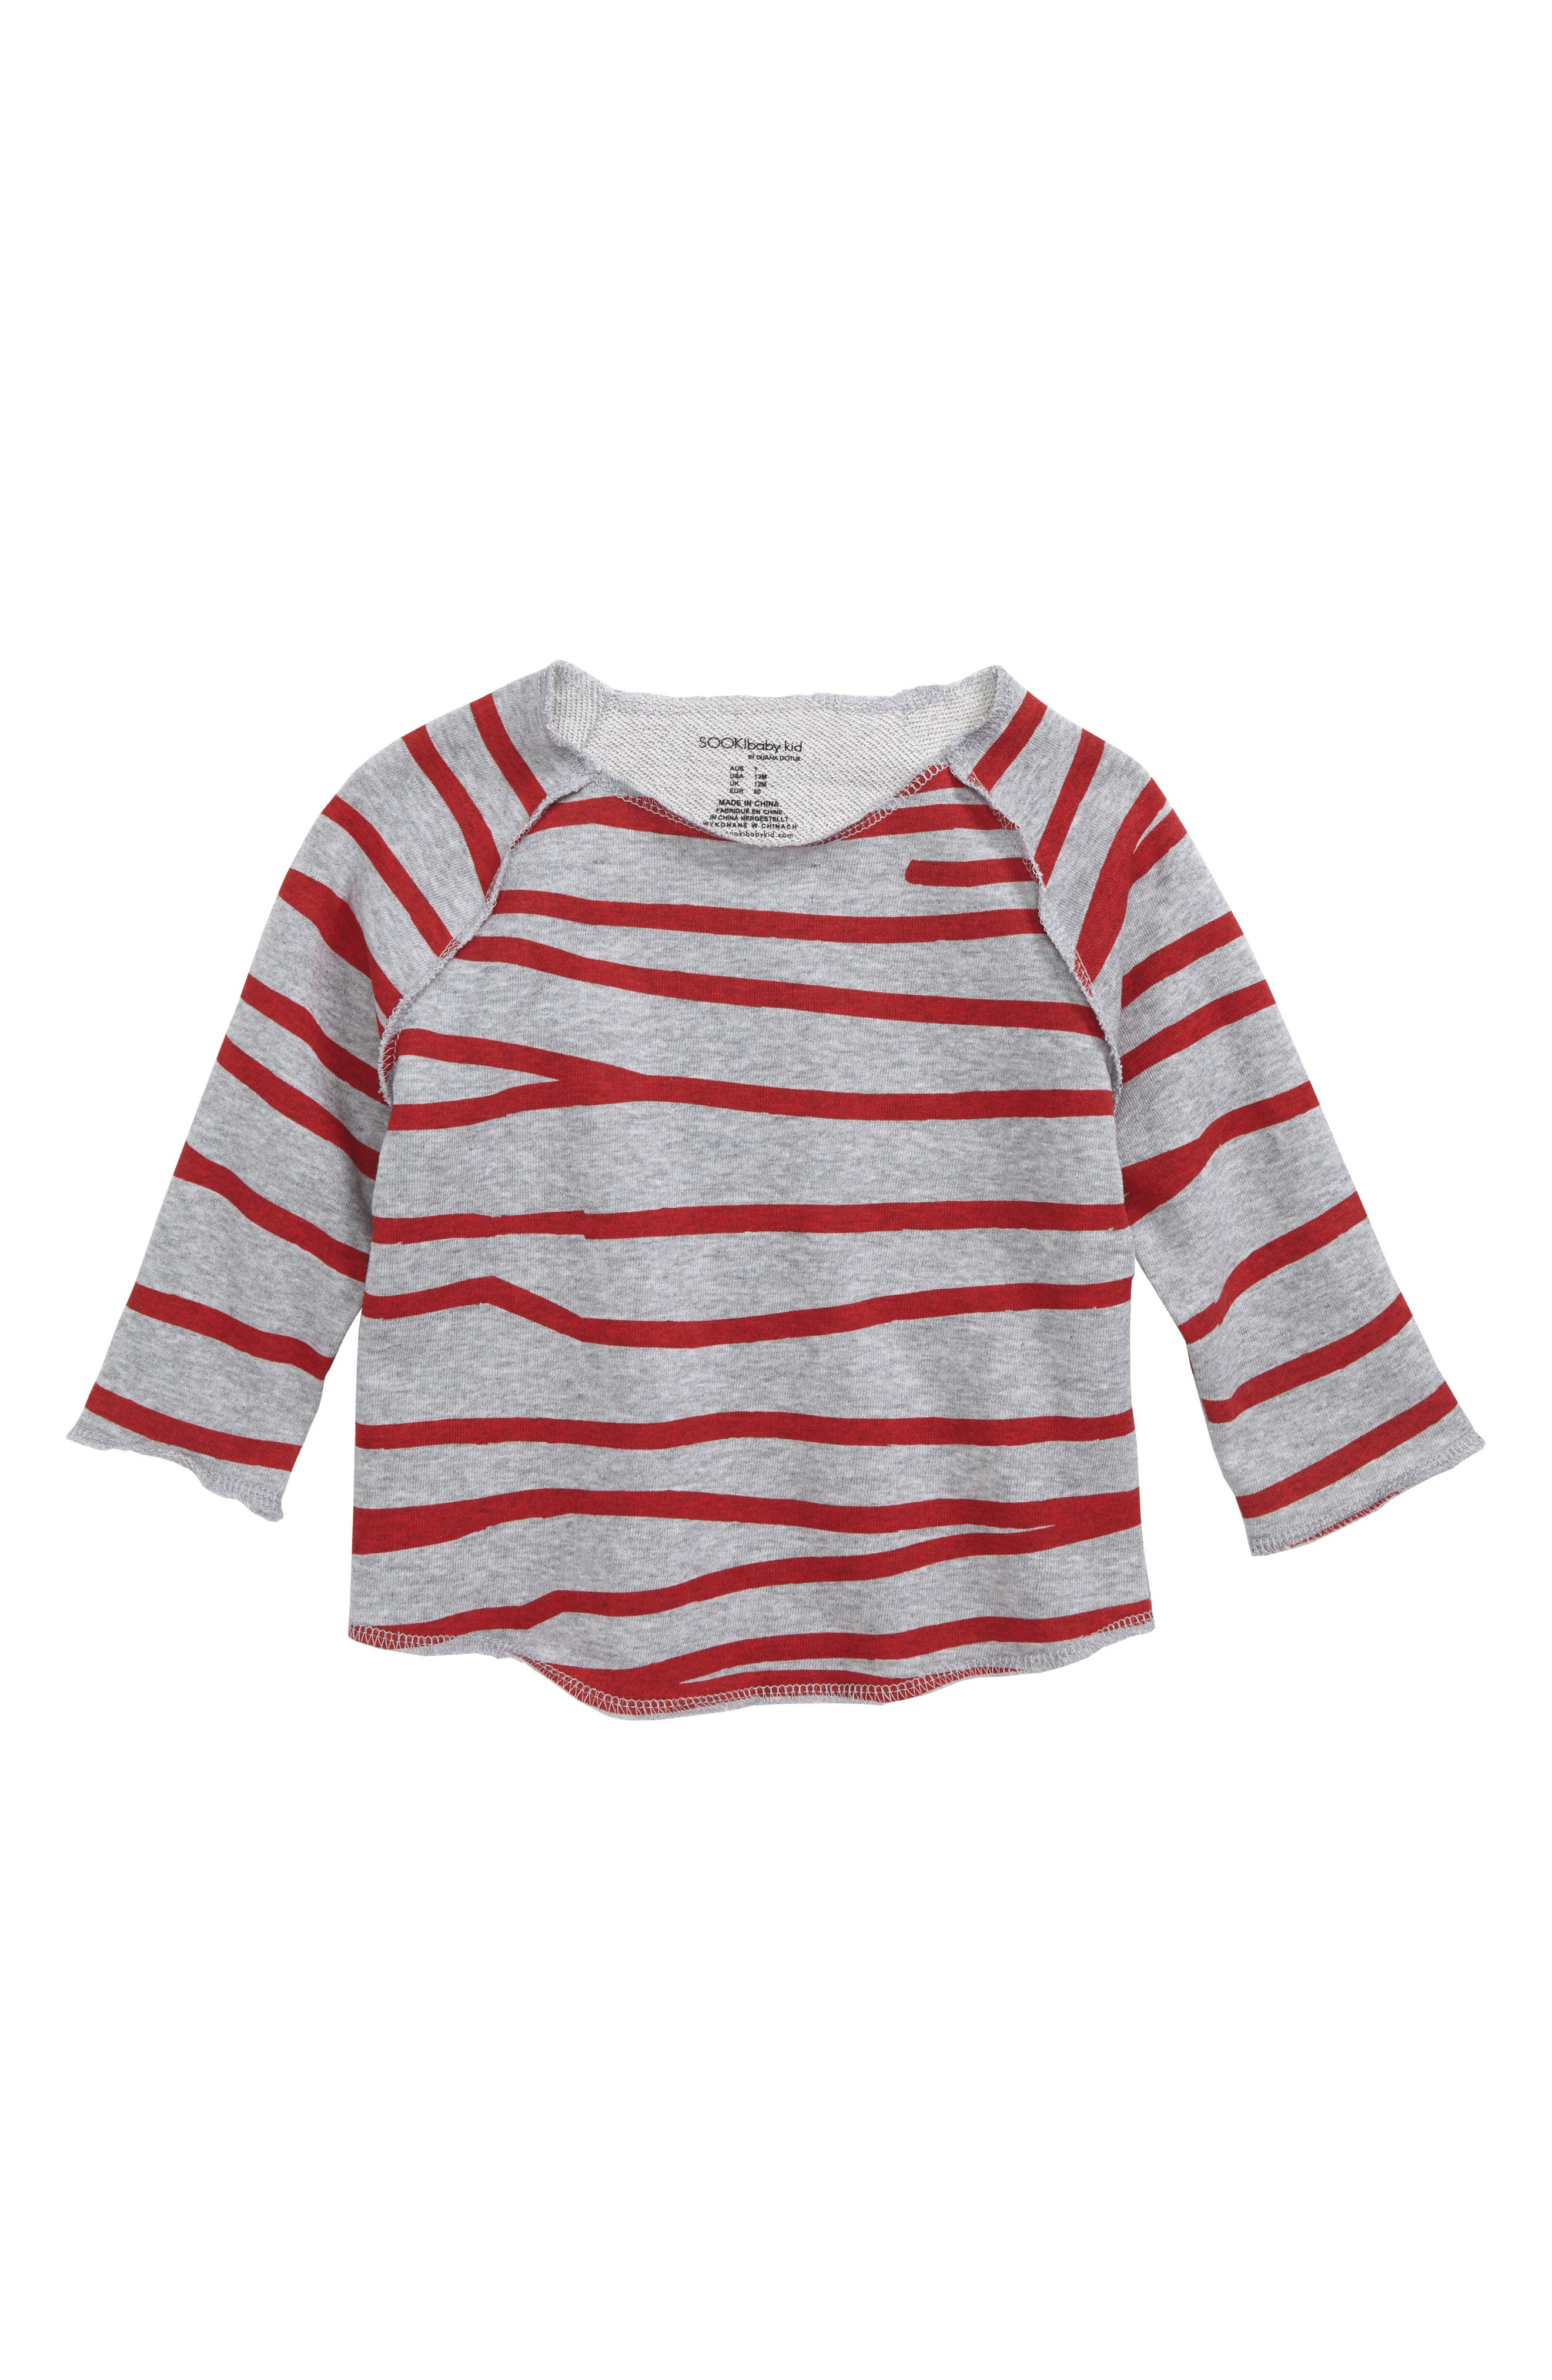 SOOKIbaby Stripe Shirt (Baby)